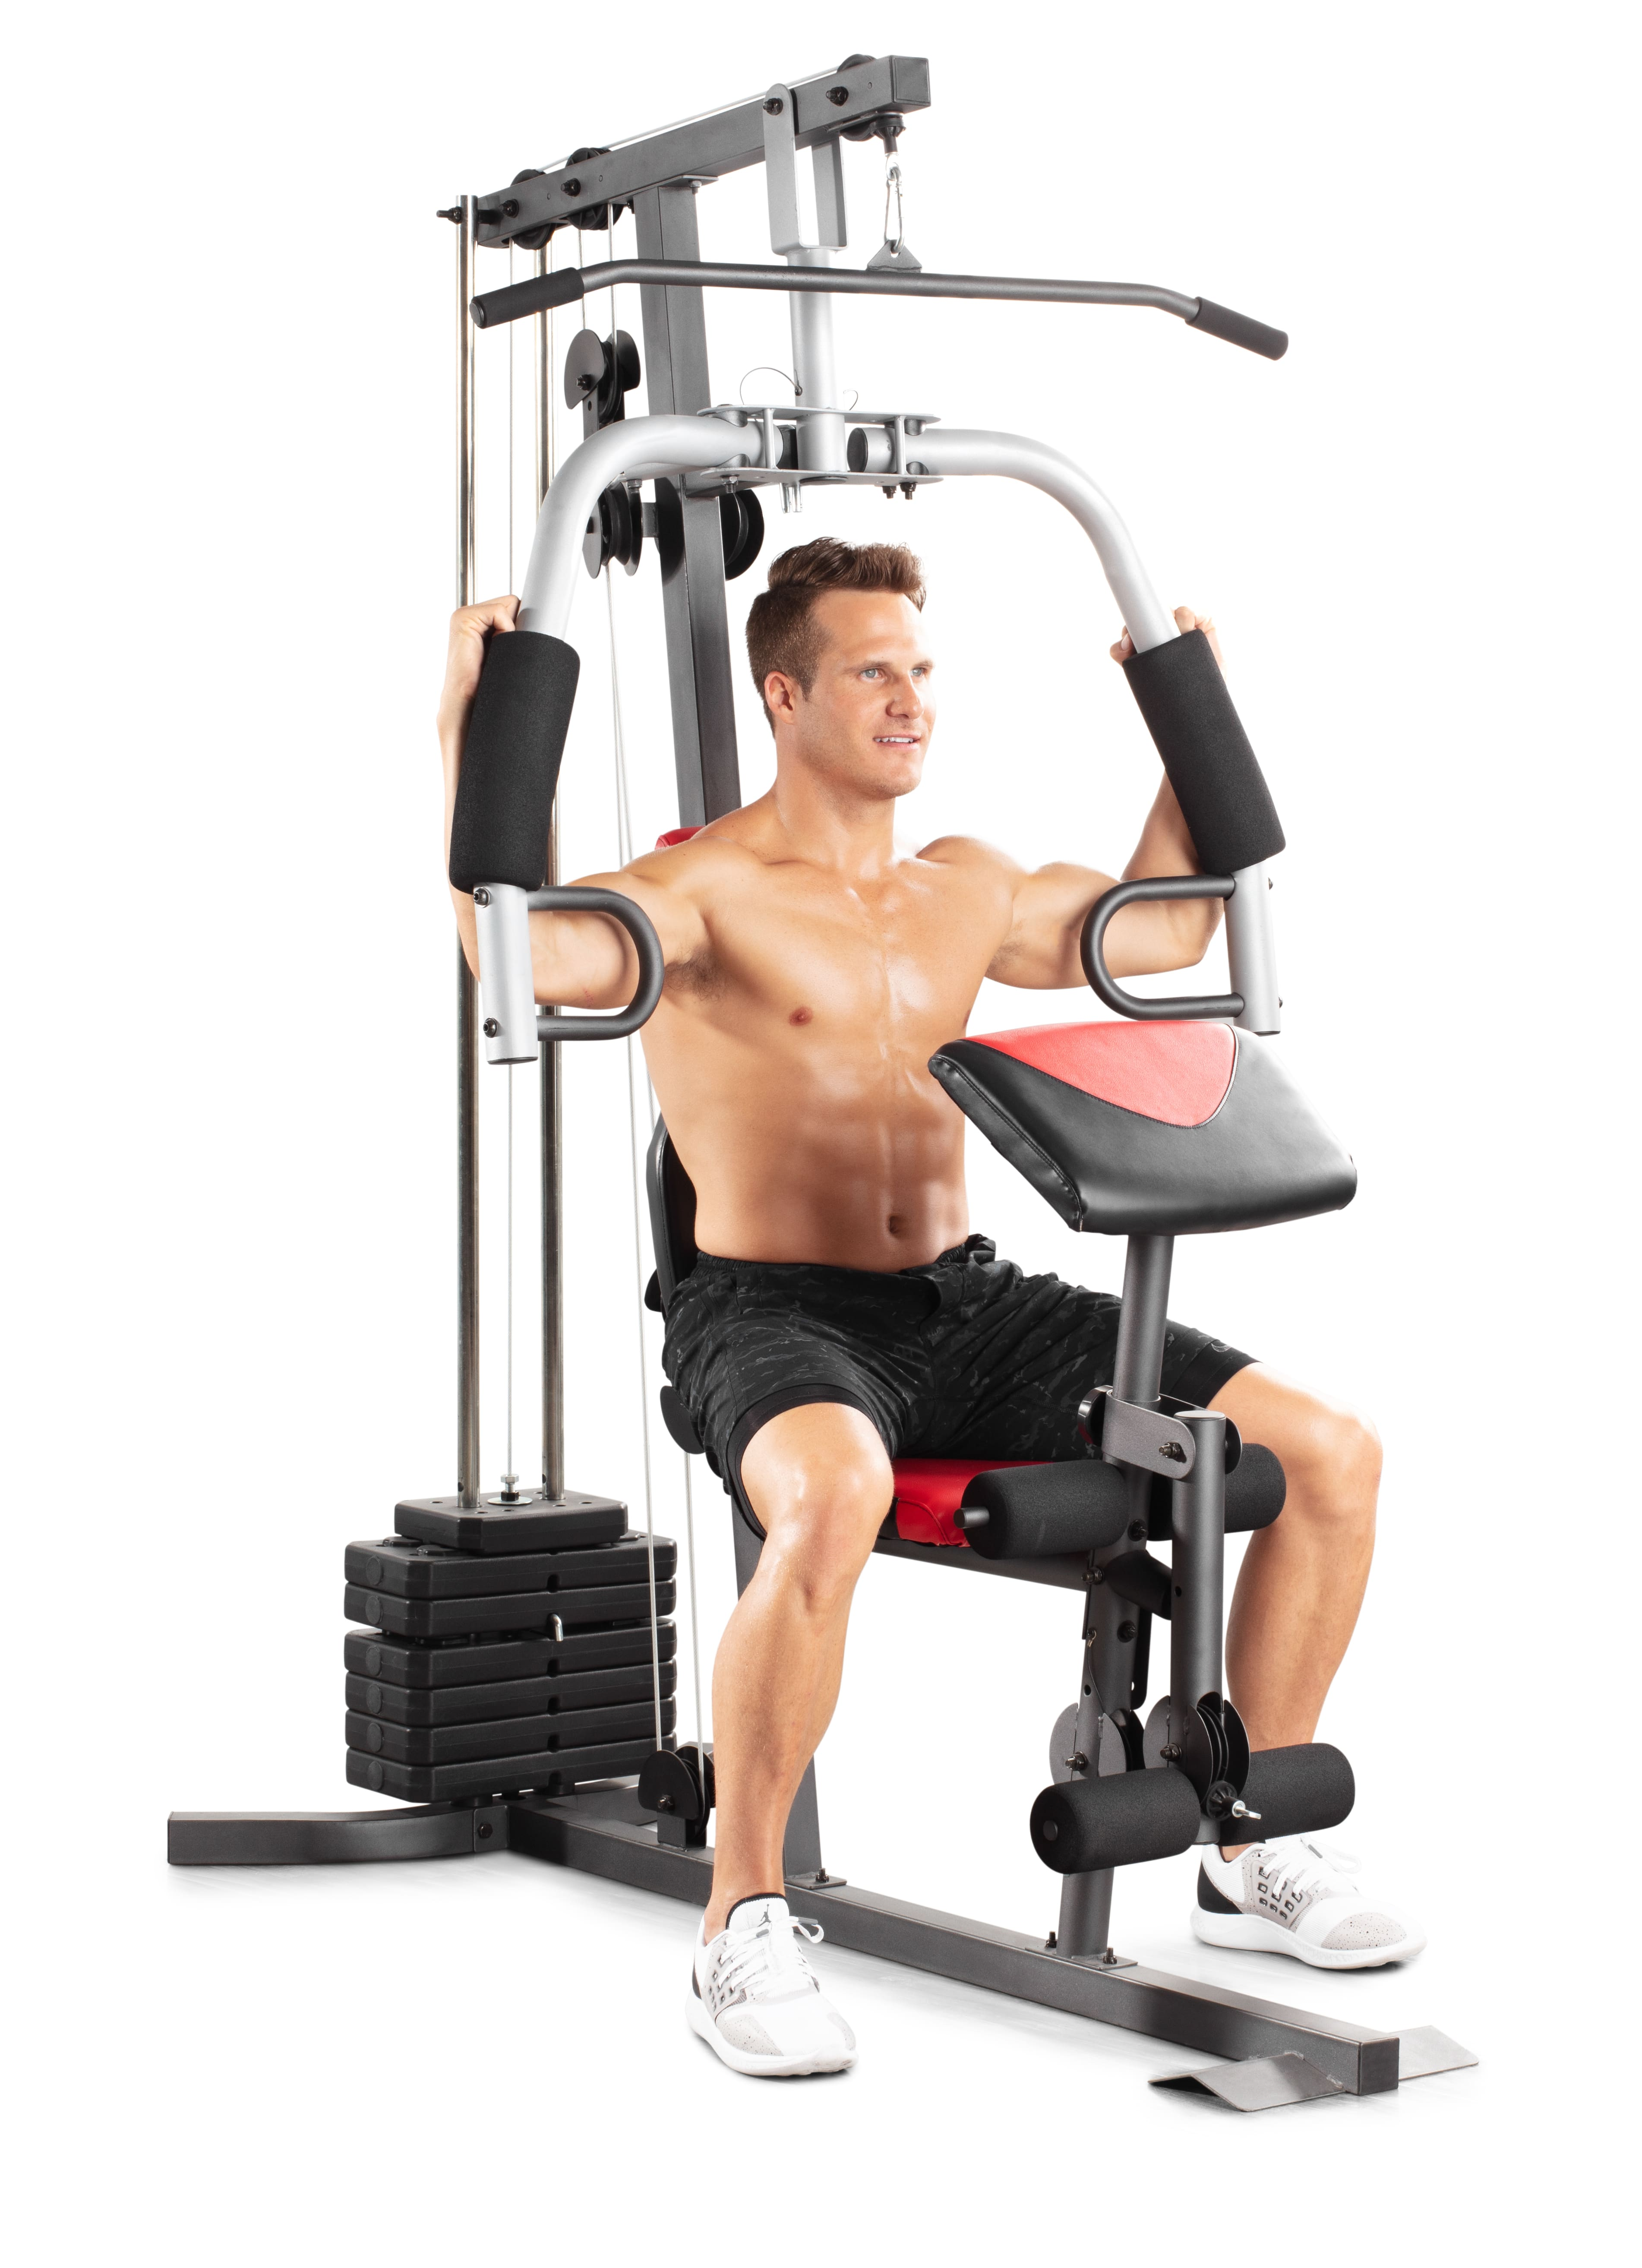 Weider 2980 Home Gym with 214 Lbs. of Resistance $179 with Store Pickup @ Walmart